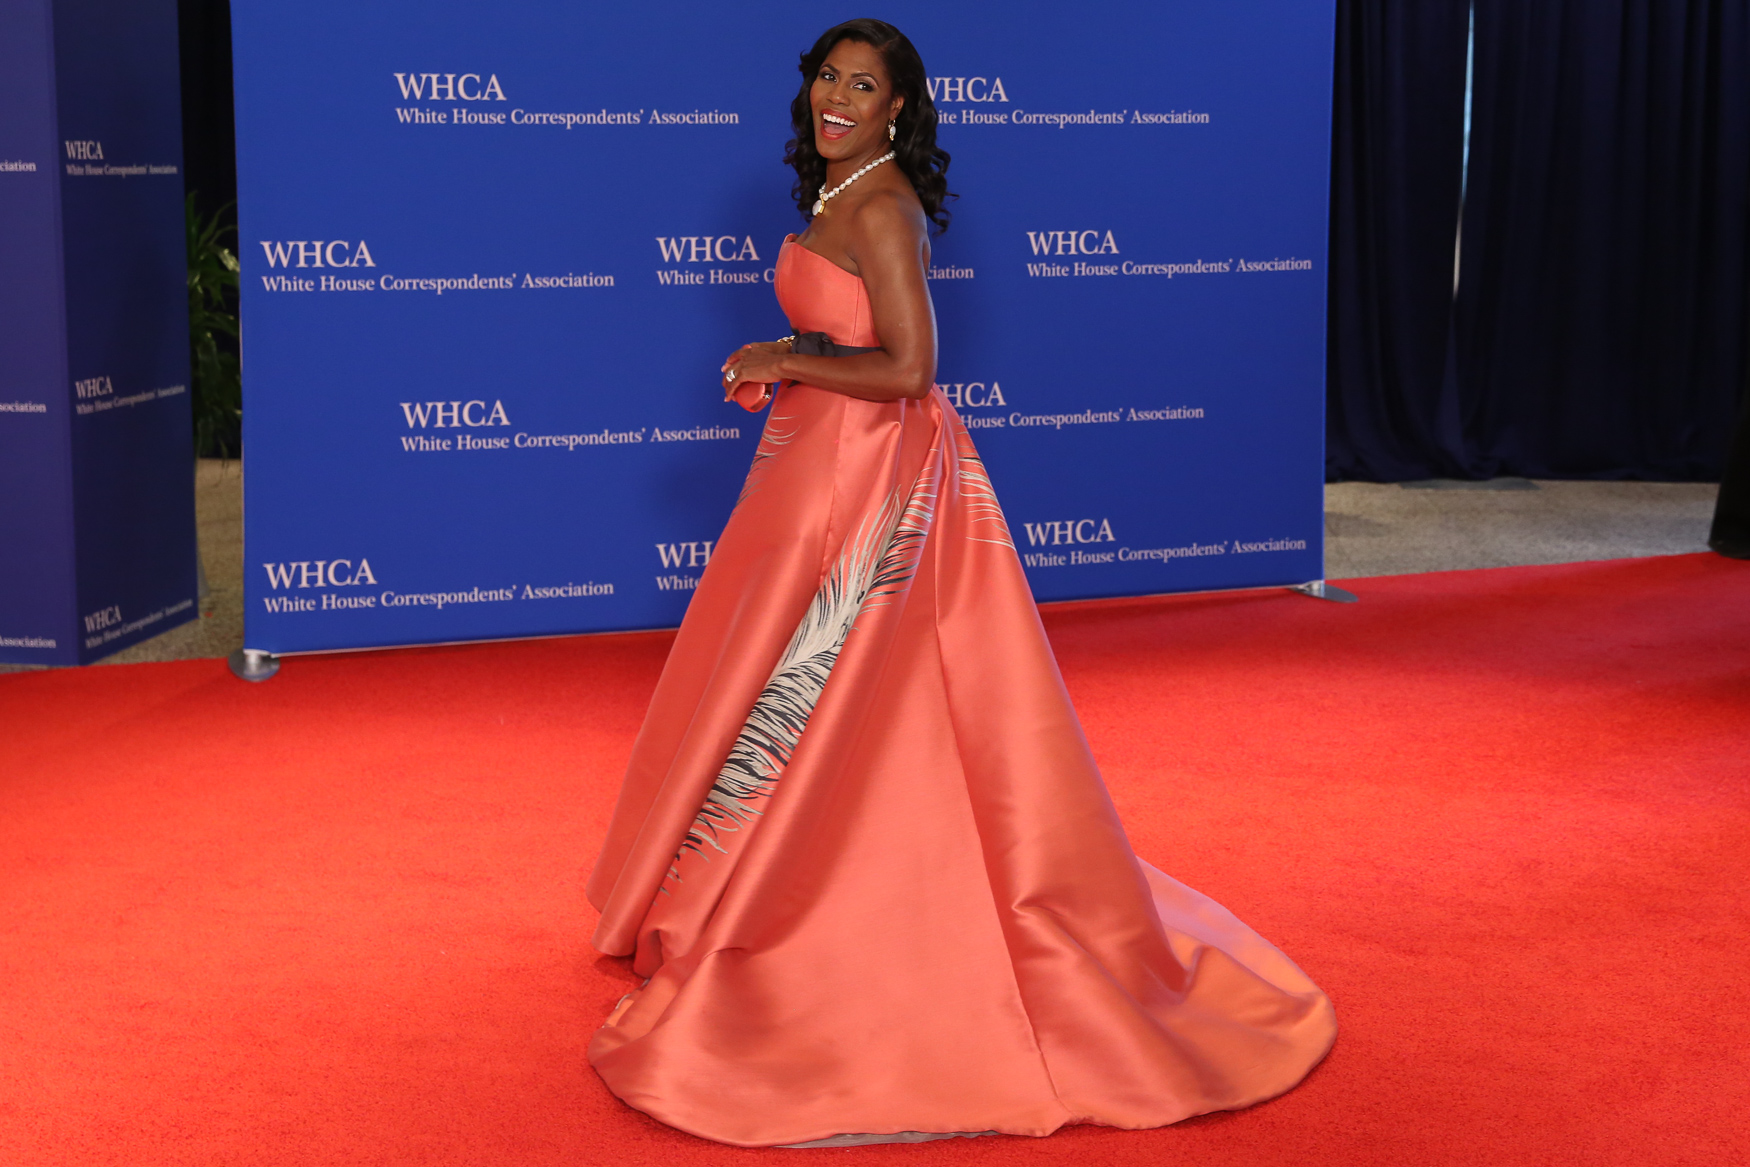 Omarosa may be out of the White House, but she came to the dinner dressed with a vengeance. That color is perfect on her skin and the silhouette is as dramatic as she was on The Apprentice.{ }(Amanda Andrade-Rhoades/DC Refined)